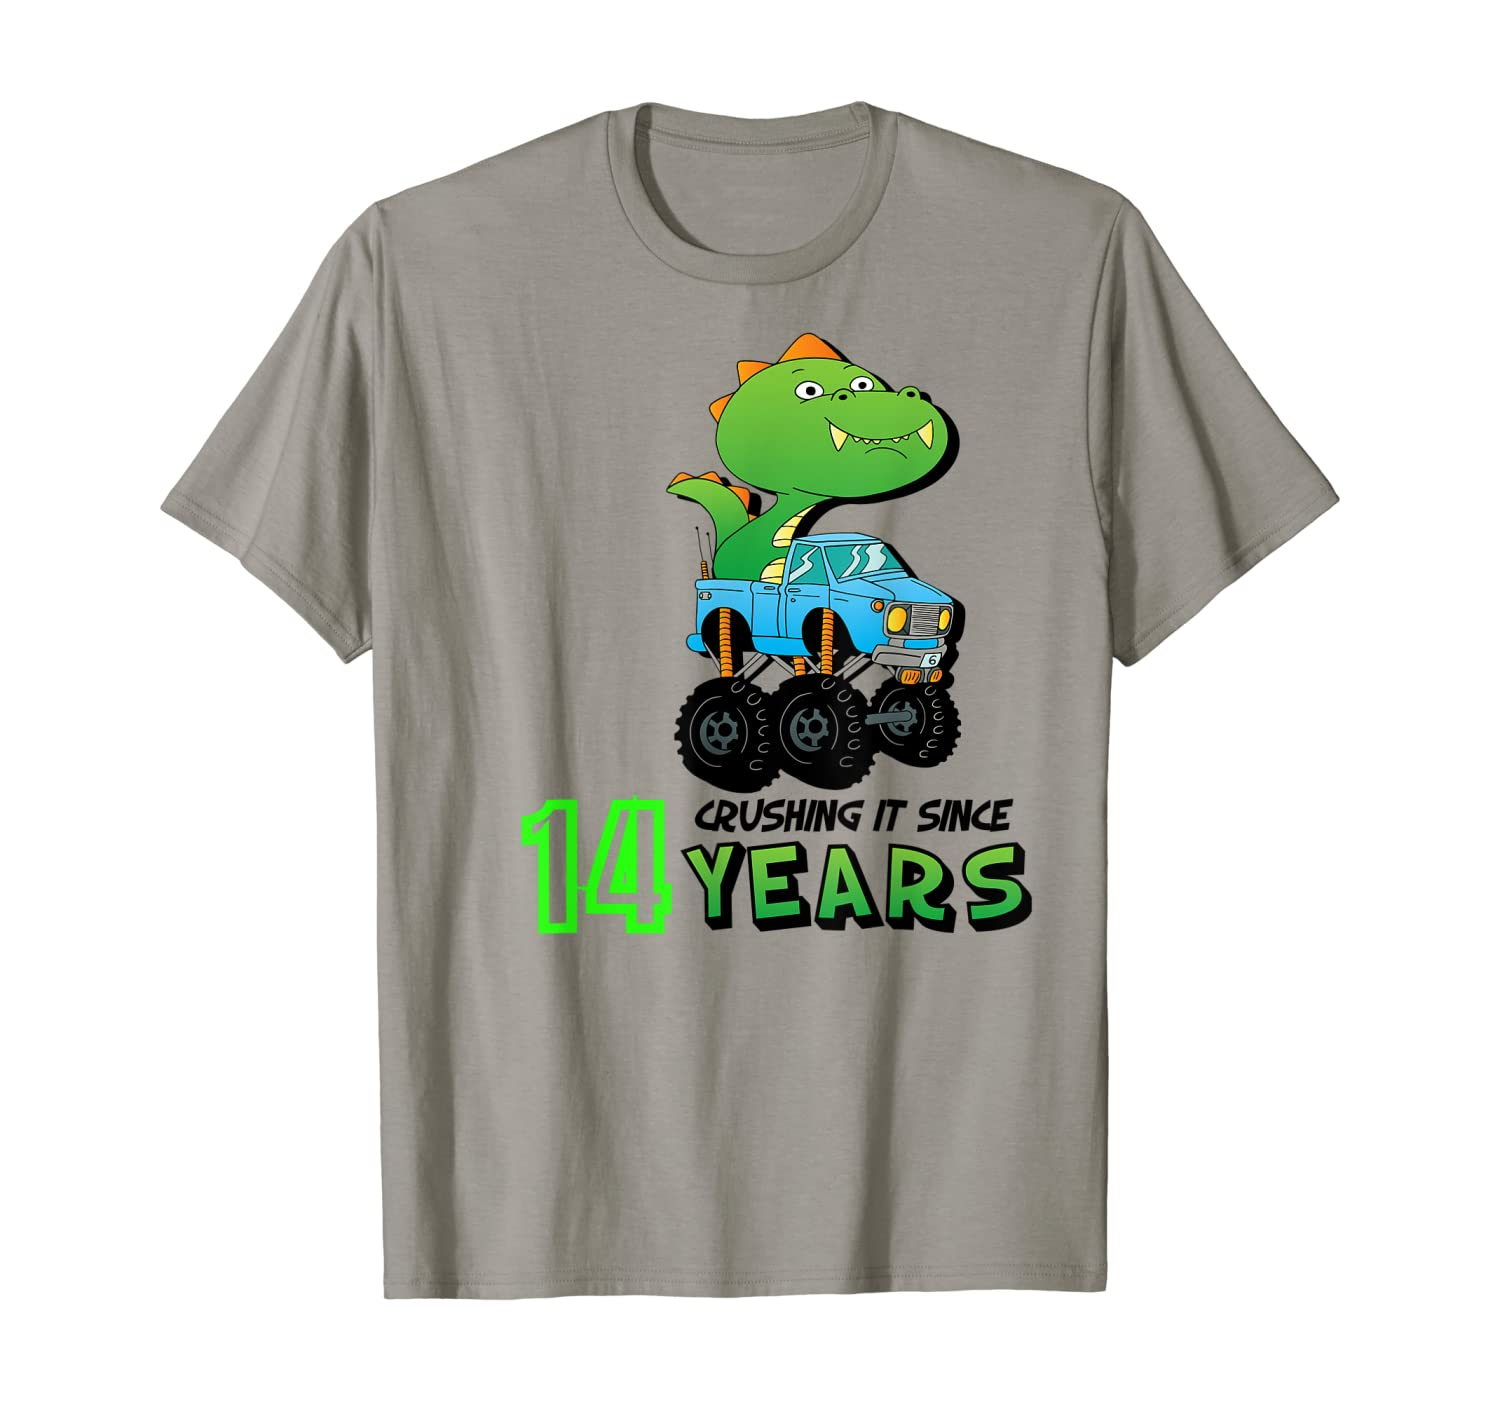 Crushing It Since 14 Years Monster Truck Dinosaur Birthday T-Shirt